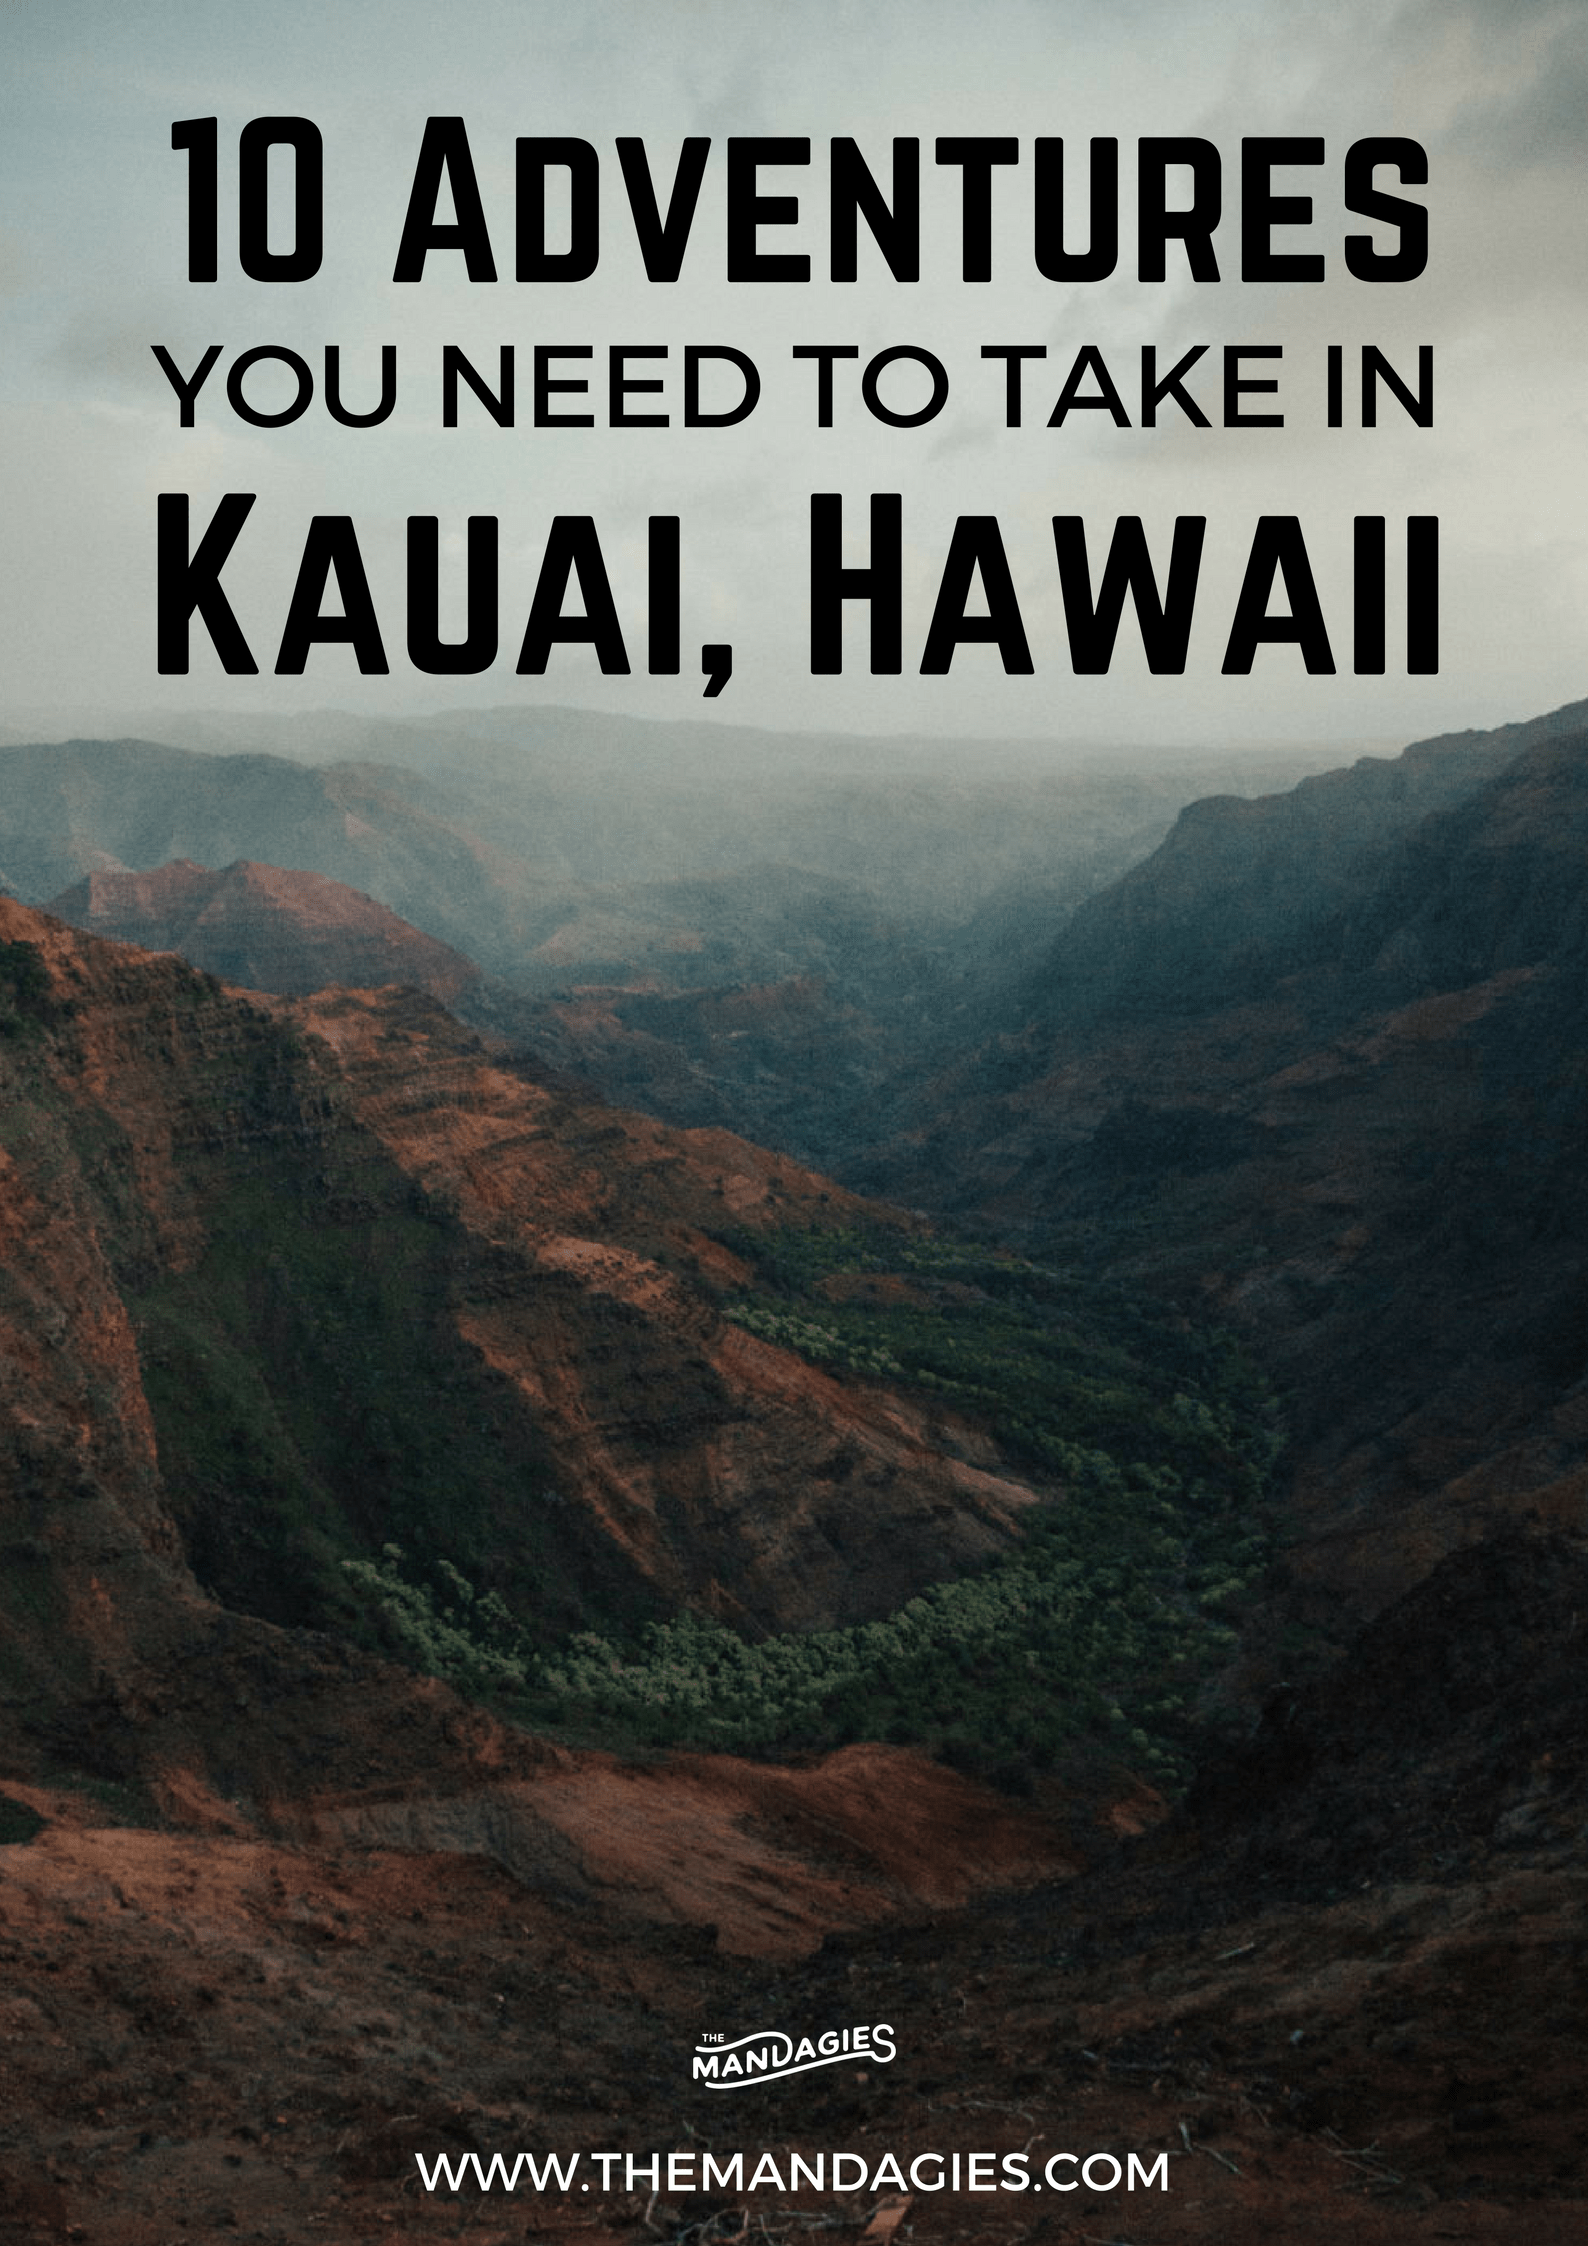 25 Trips Of A Lifetime With Images: 25 Once-In-A-Lifetime Things To Do In Kauai: 7 Day